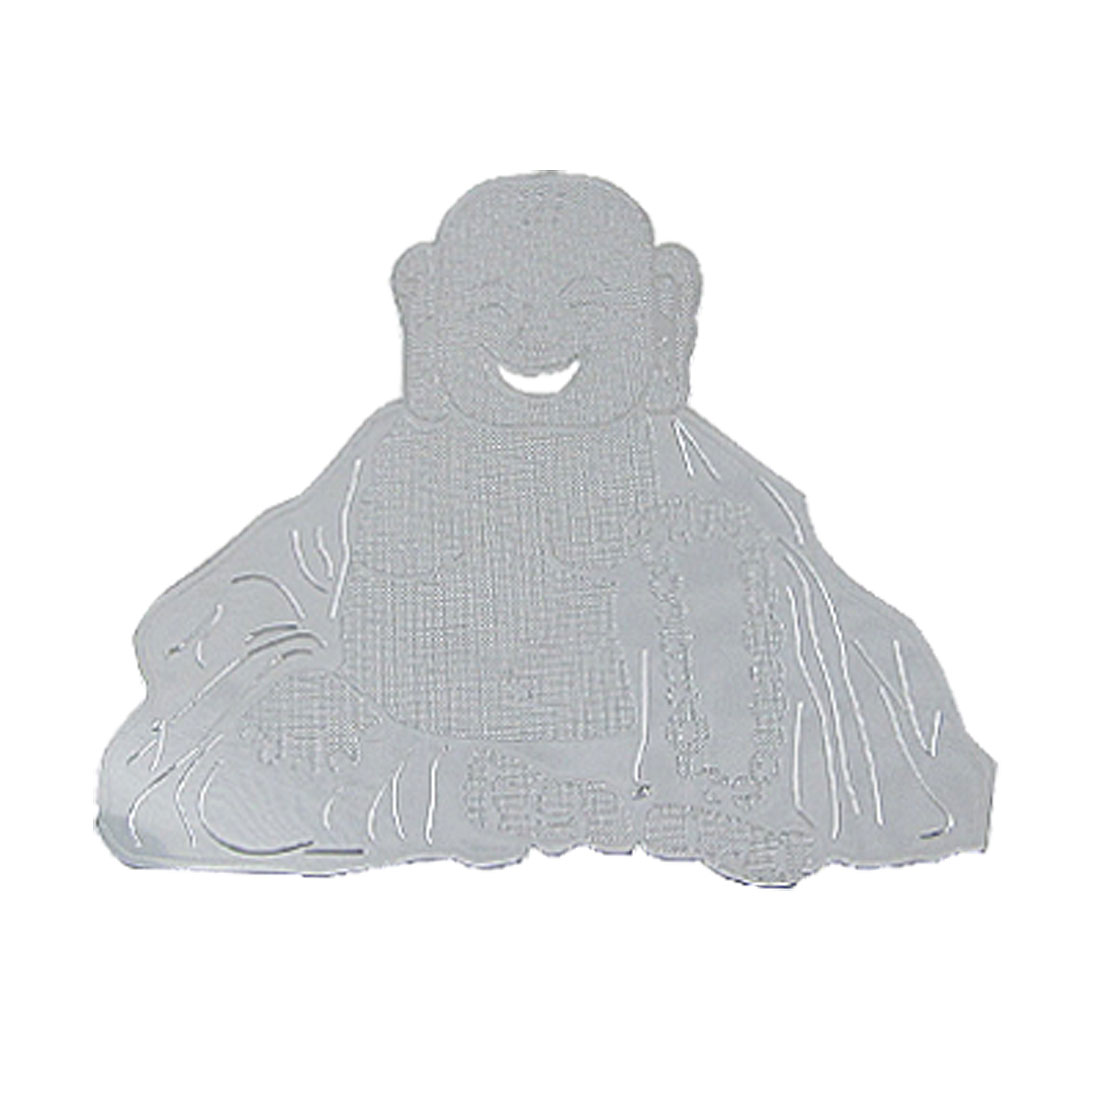 Laughing Buddha Print Protection Sticker Decor Silver Tone